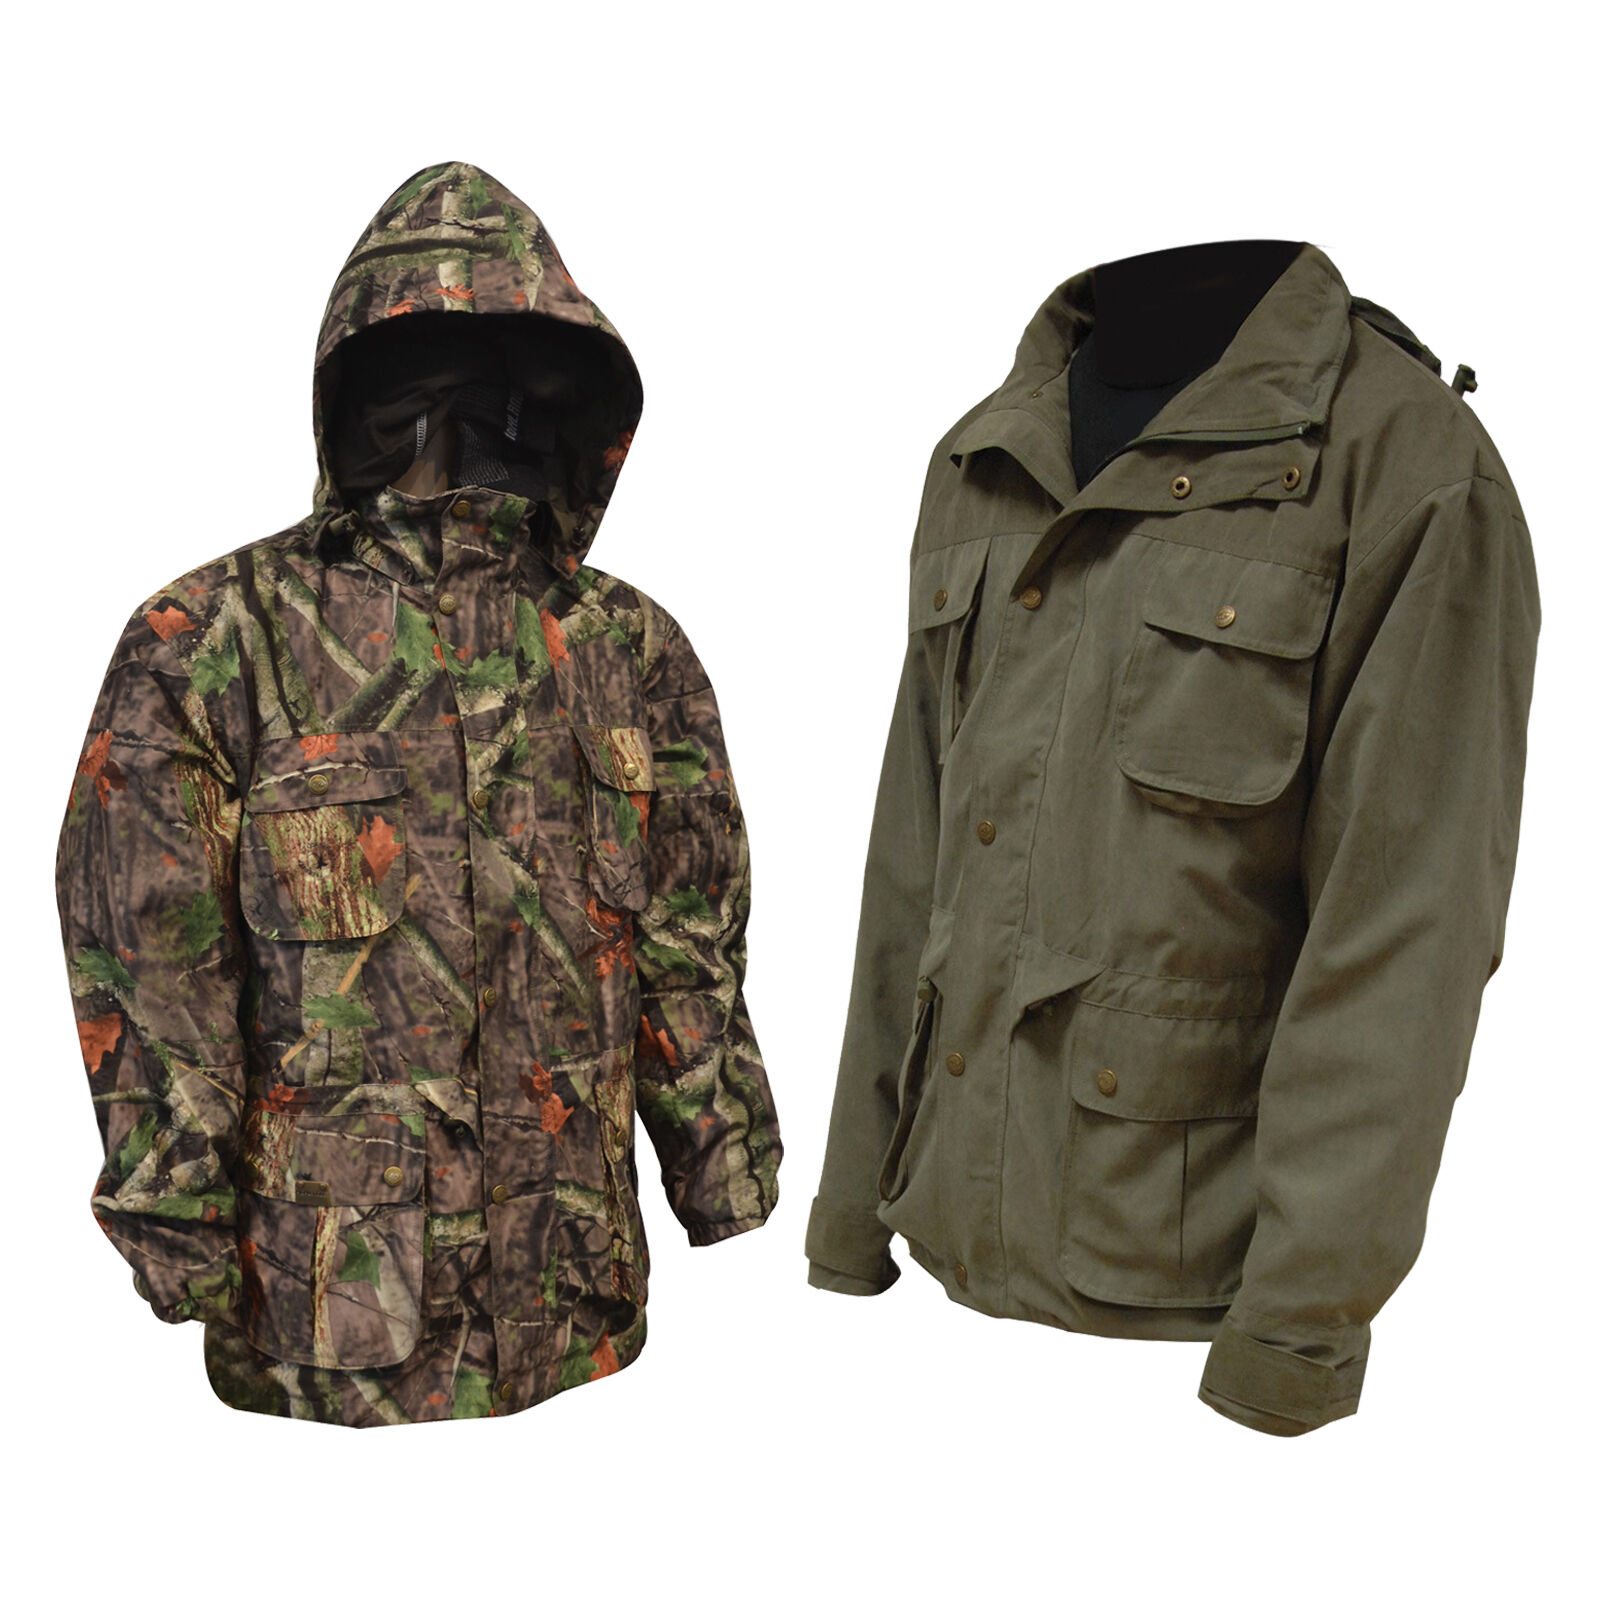 Rexmoor Veste Arbre Profond Camouflage Grün Olive Ab-Tex Respirable Chasse